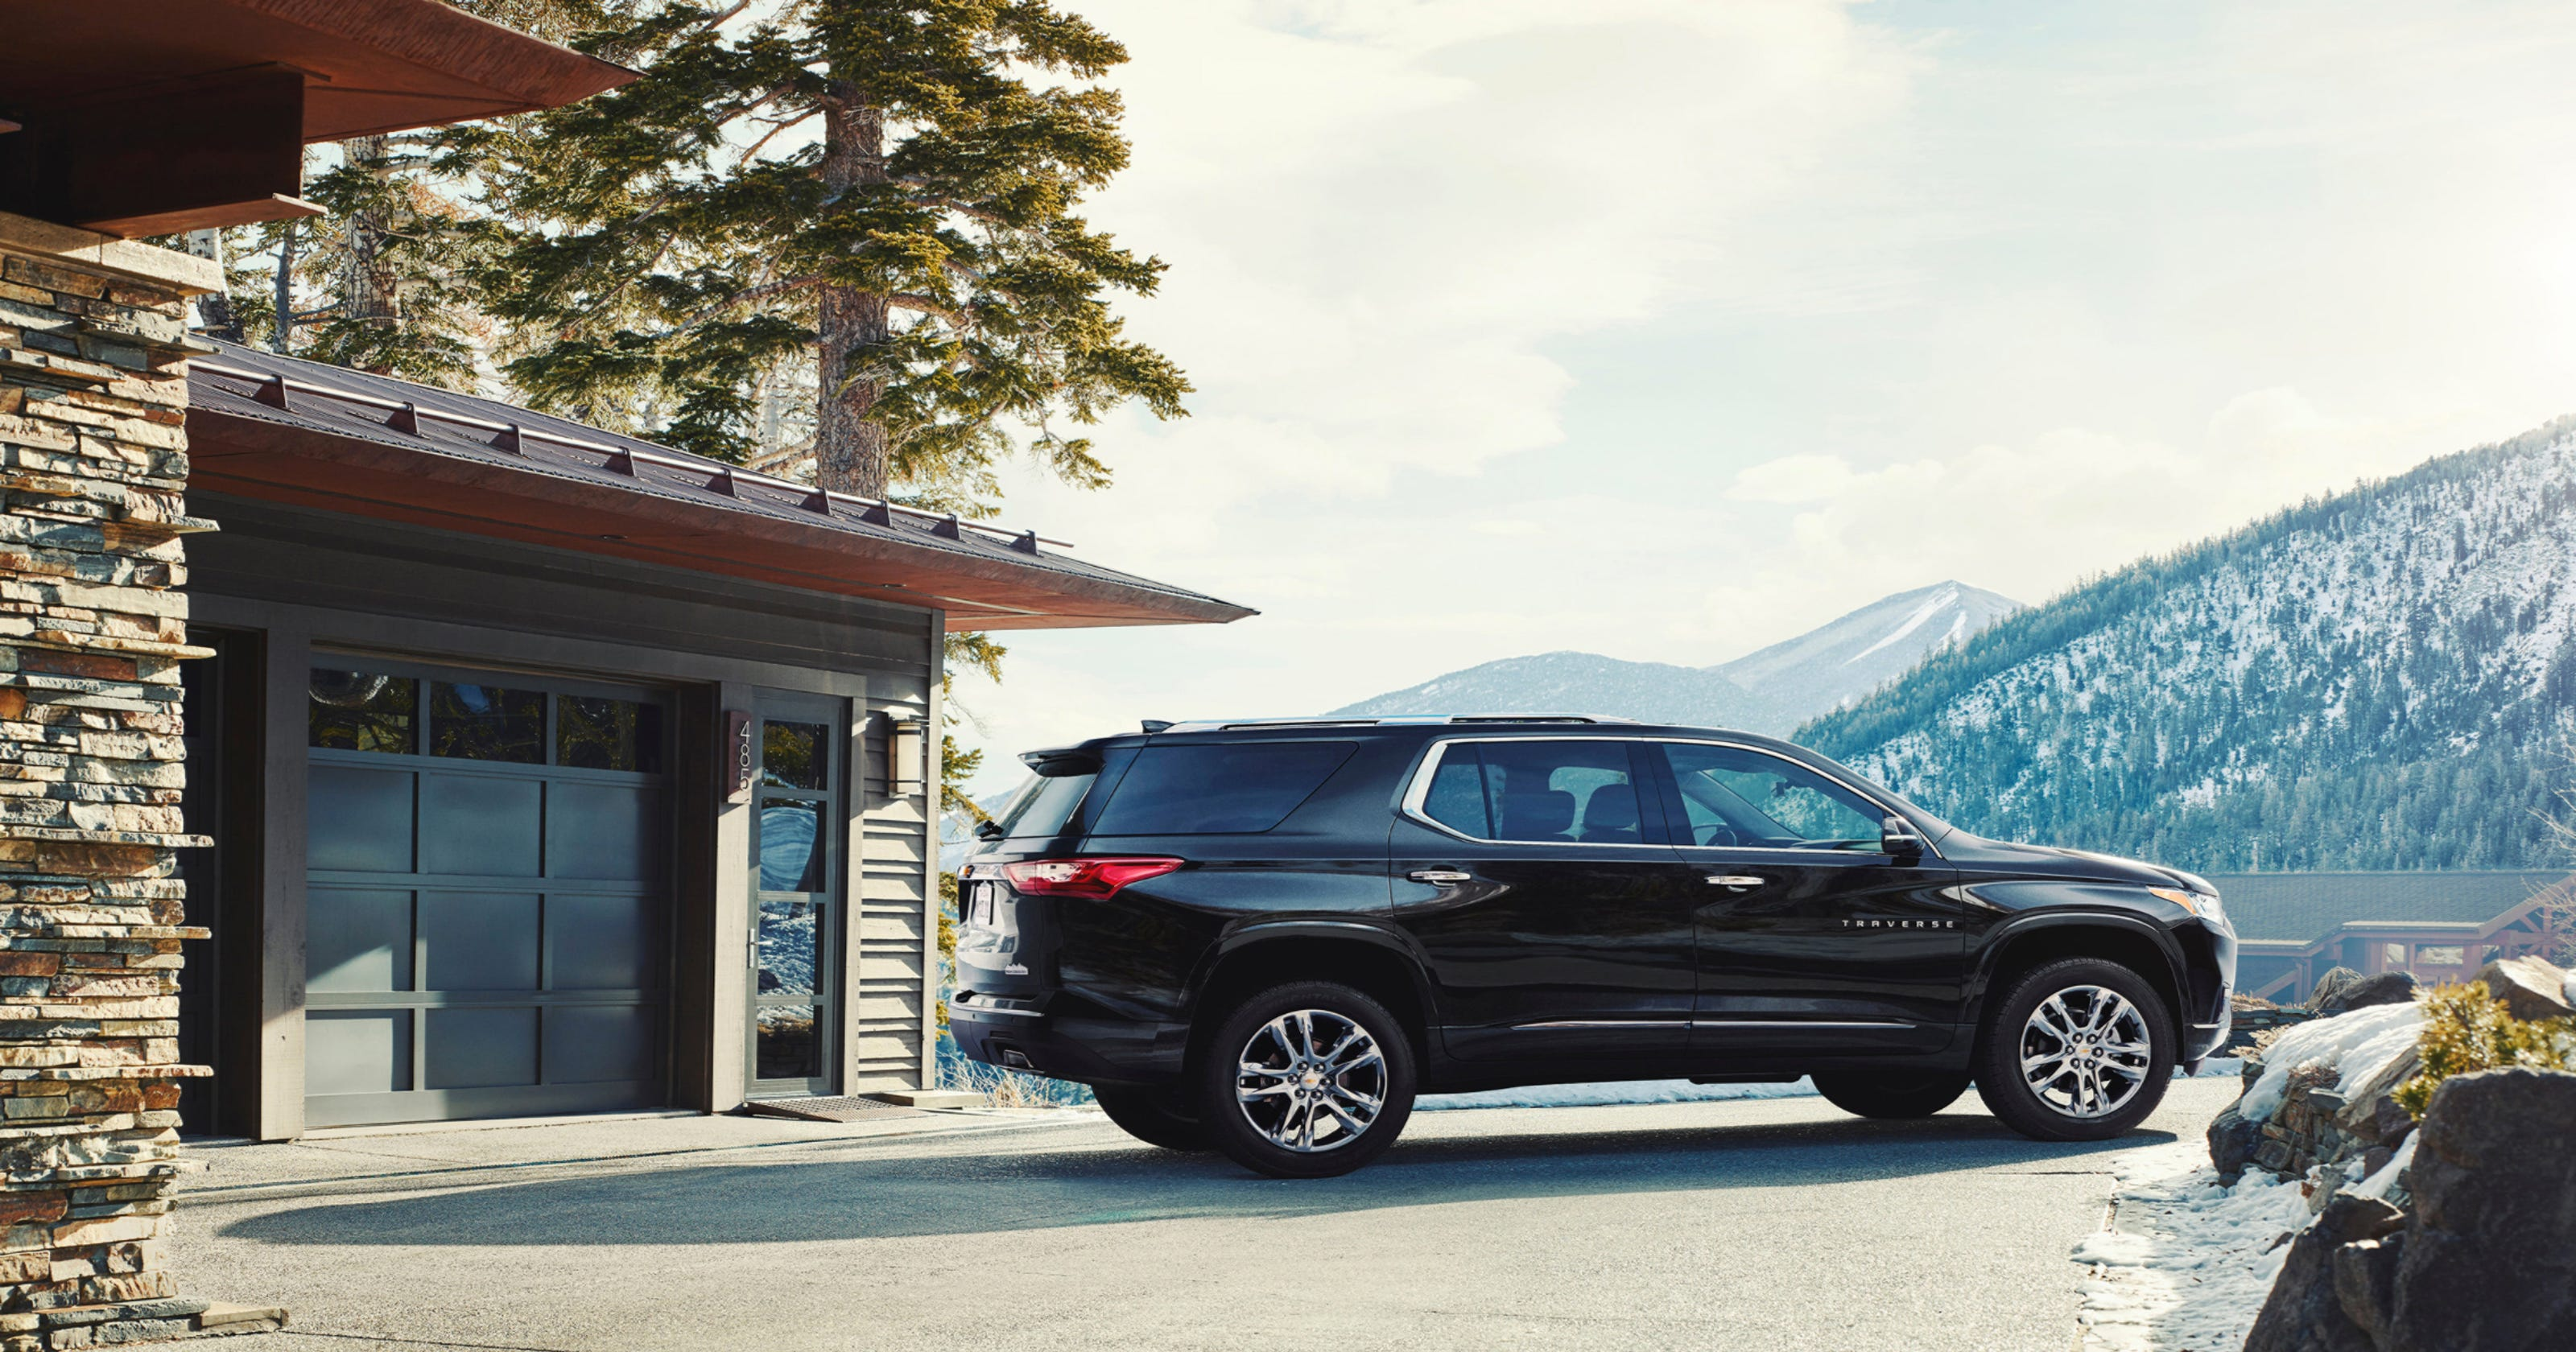 New Chevy Suv >> 2018 Chevy Traverse High Country Takes The Family Suv To The Peak